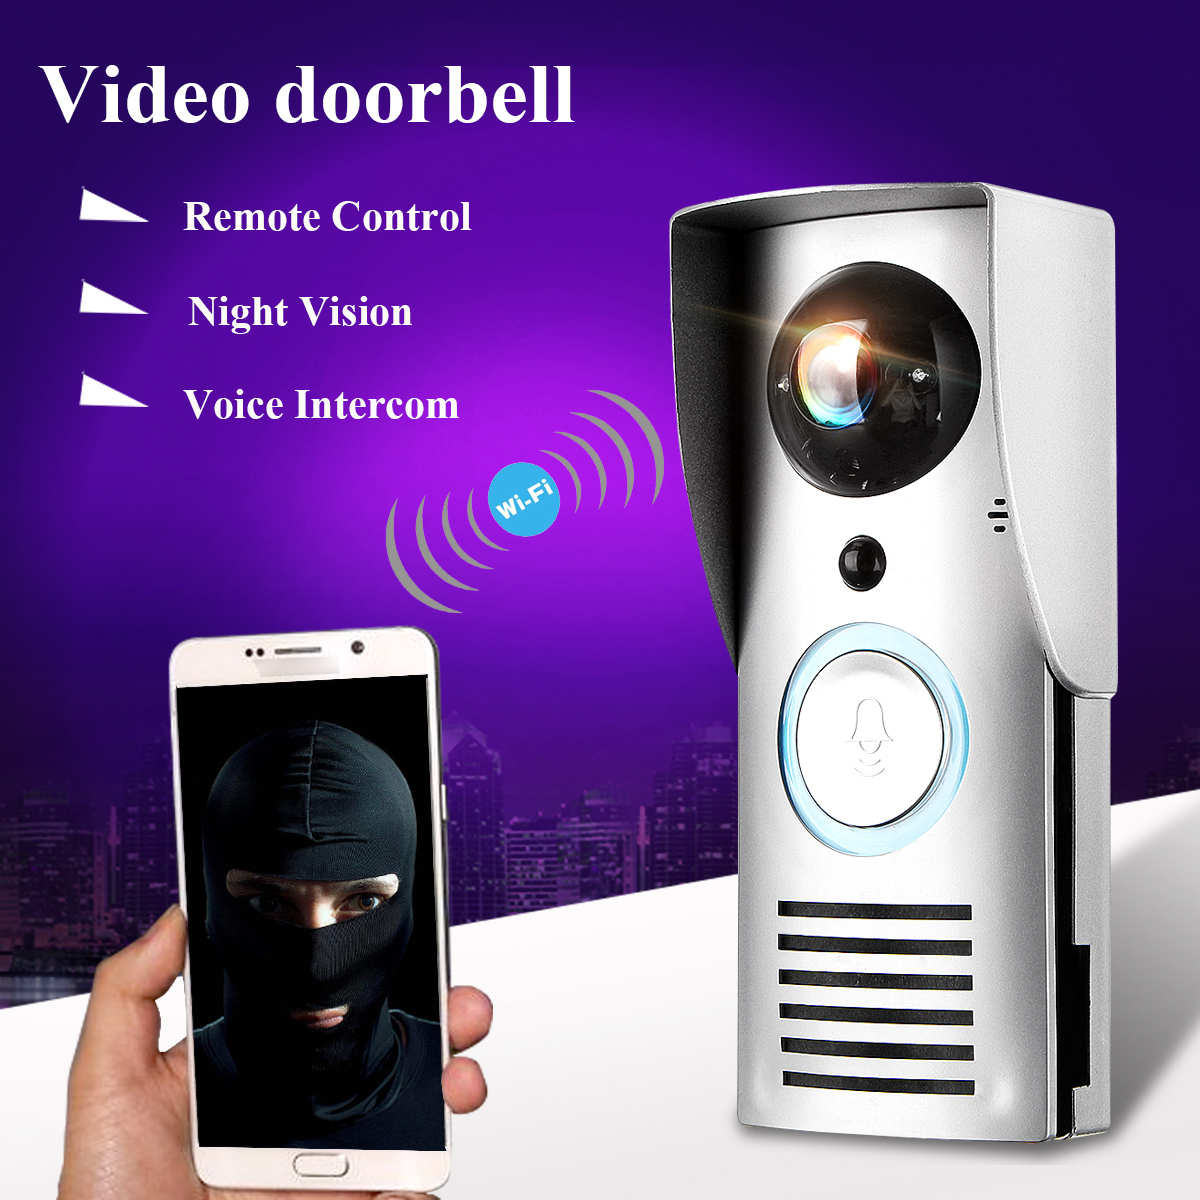 1280x720P Wifi Wireless Night Vision Video Doorbell Motion Detection Alarm Visible Monitor